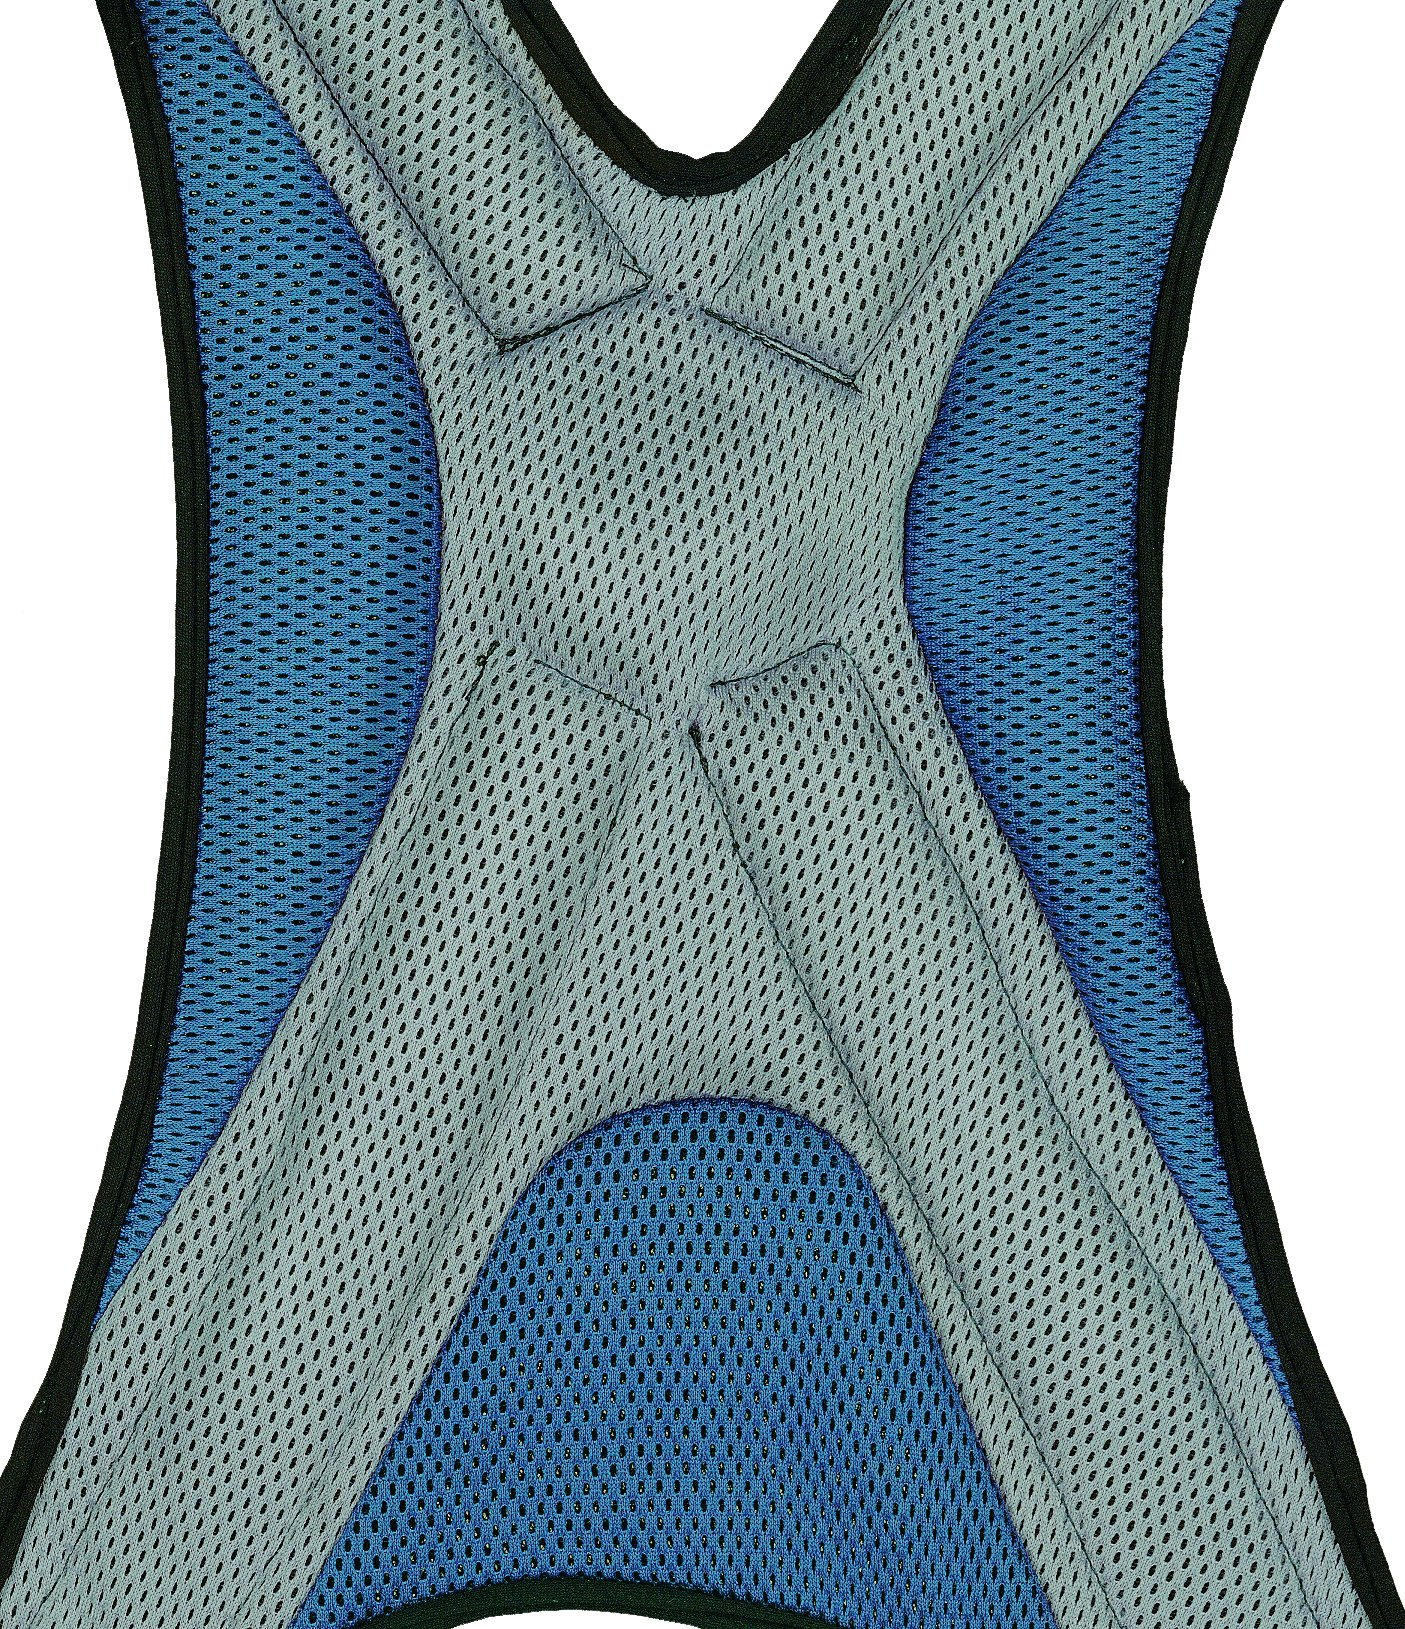 3M DBI-SALA ExoFit Vest Style Harness, Back D-Ring, Medium, 1107976 by 3M Fall Protection Business (Image #6)